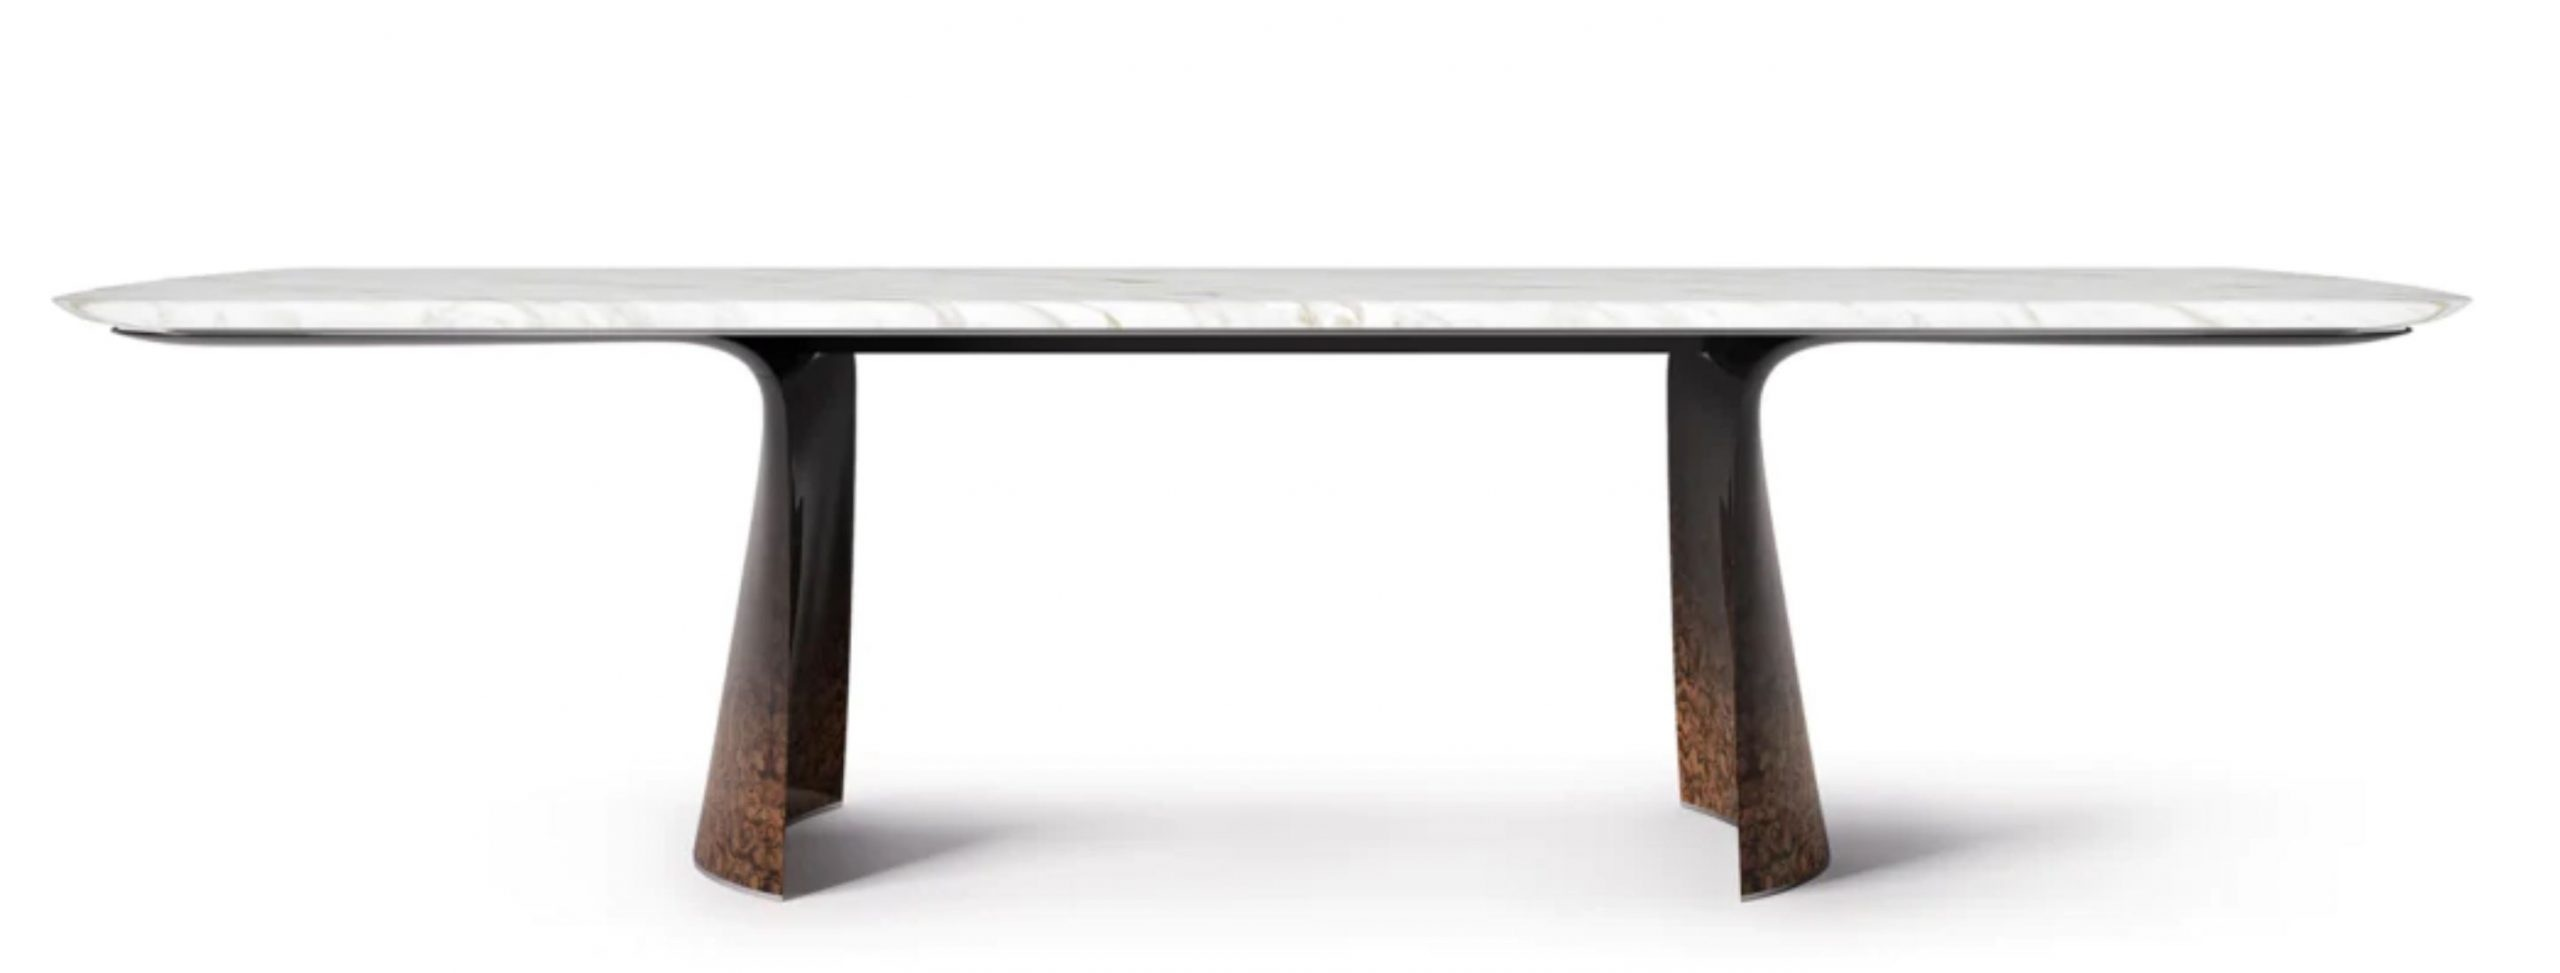 table-bentley-home-digital-design-week-2021